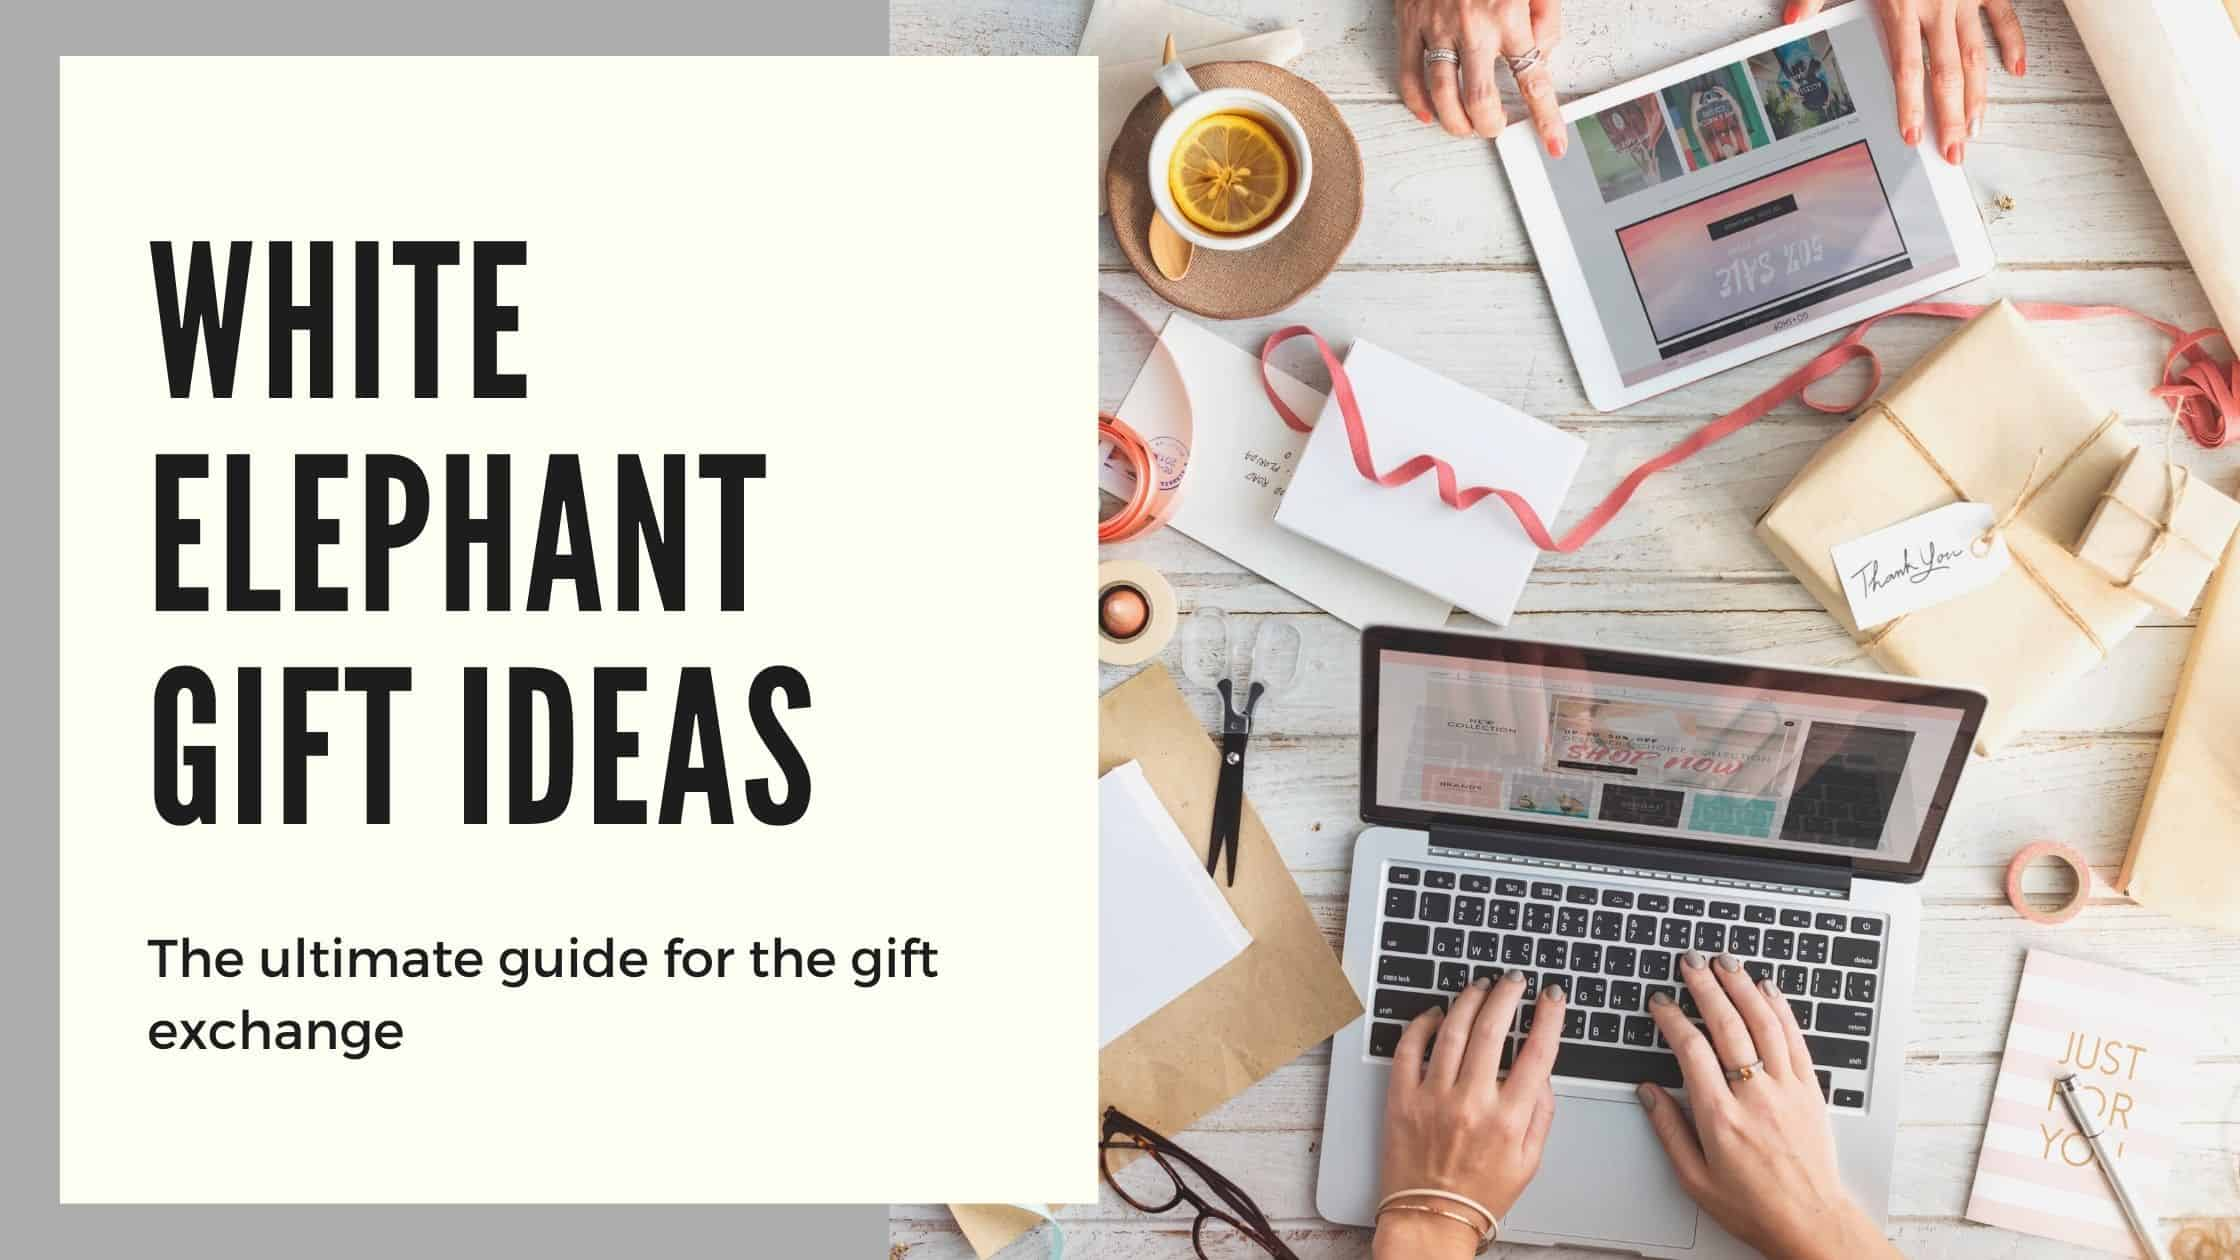 White Elephant Gift Guide: 40+ Fun Ideas Everyone Will Fight For (2021)